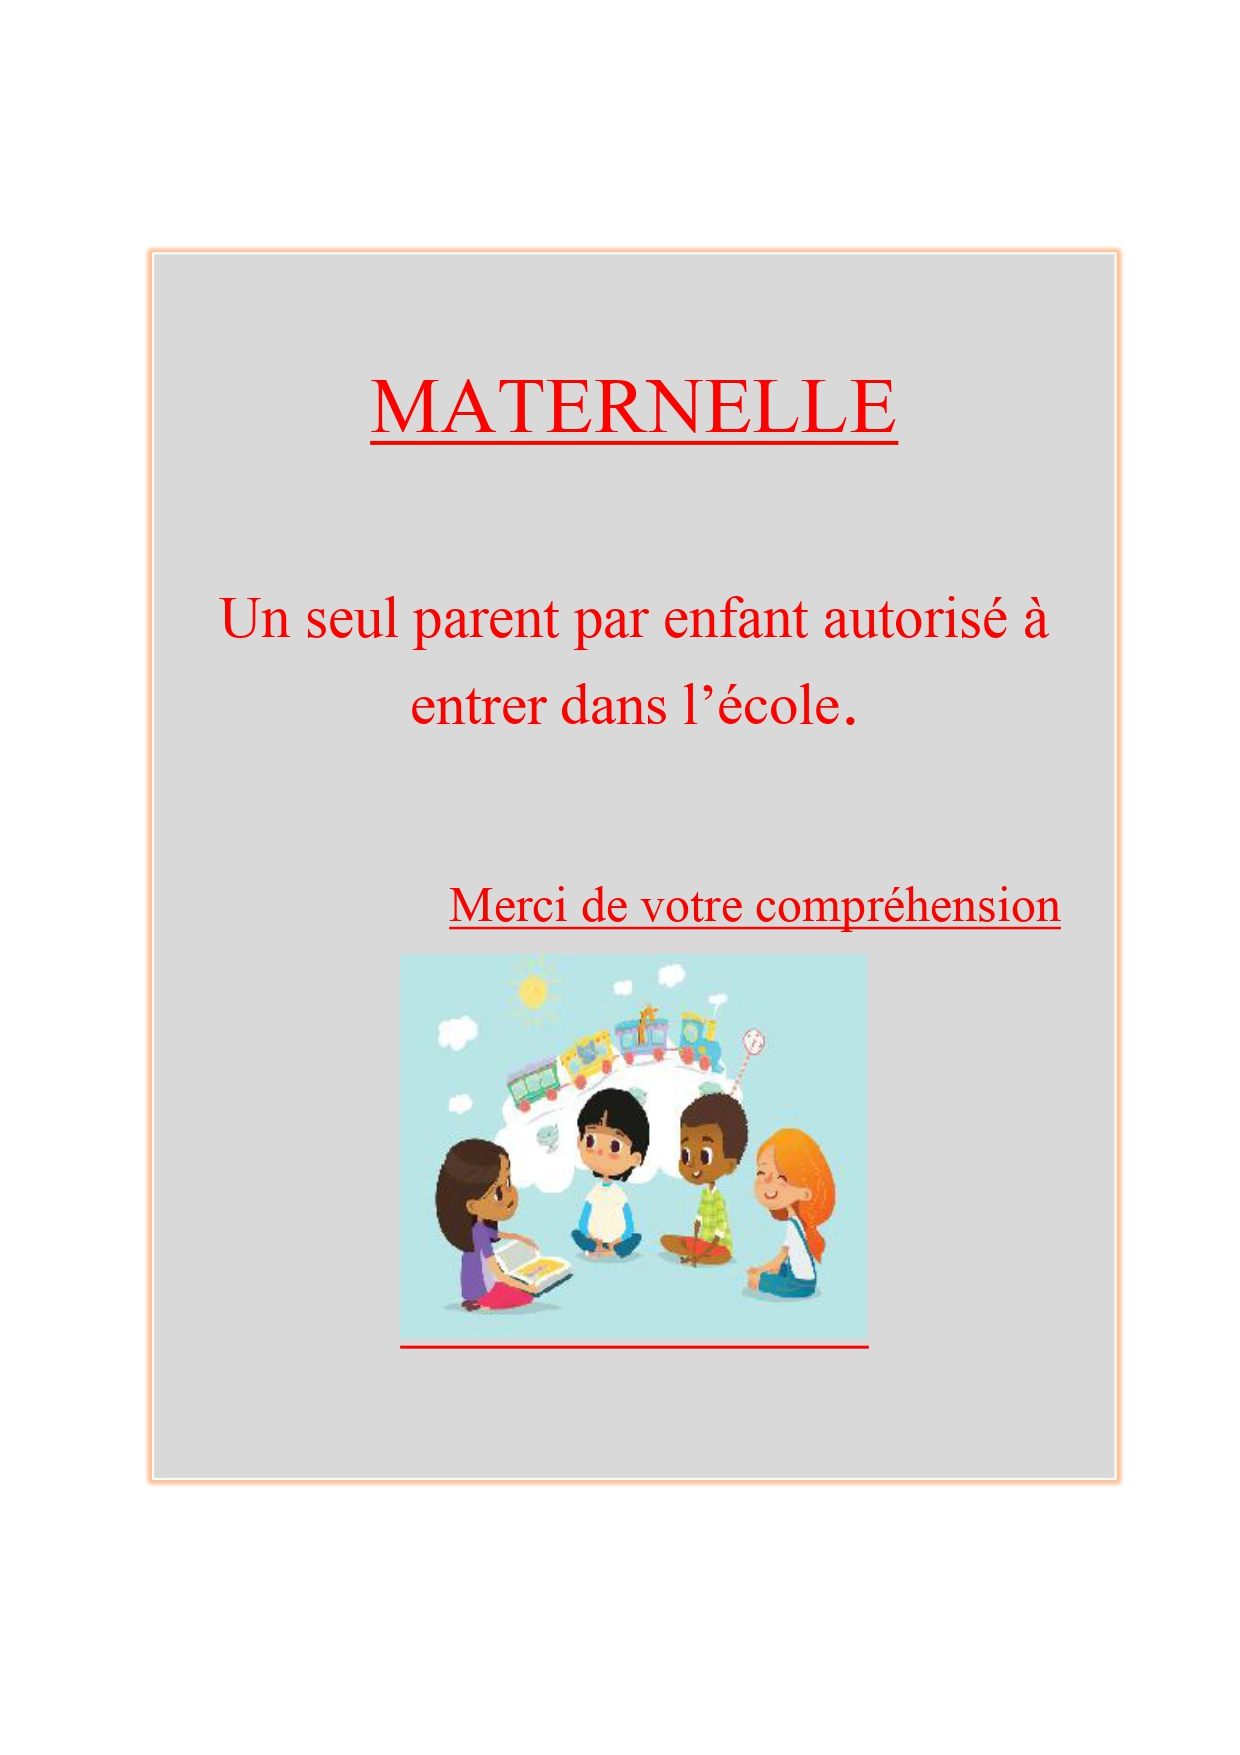 Info maternelle _page-0001.jpg